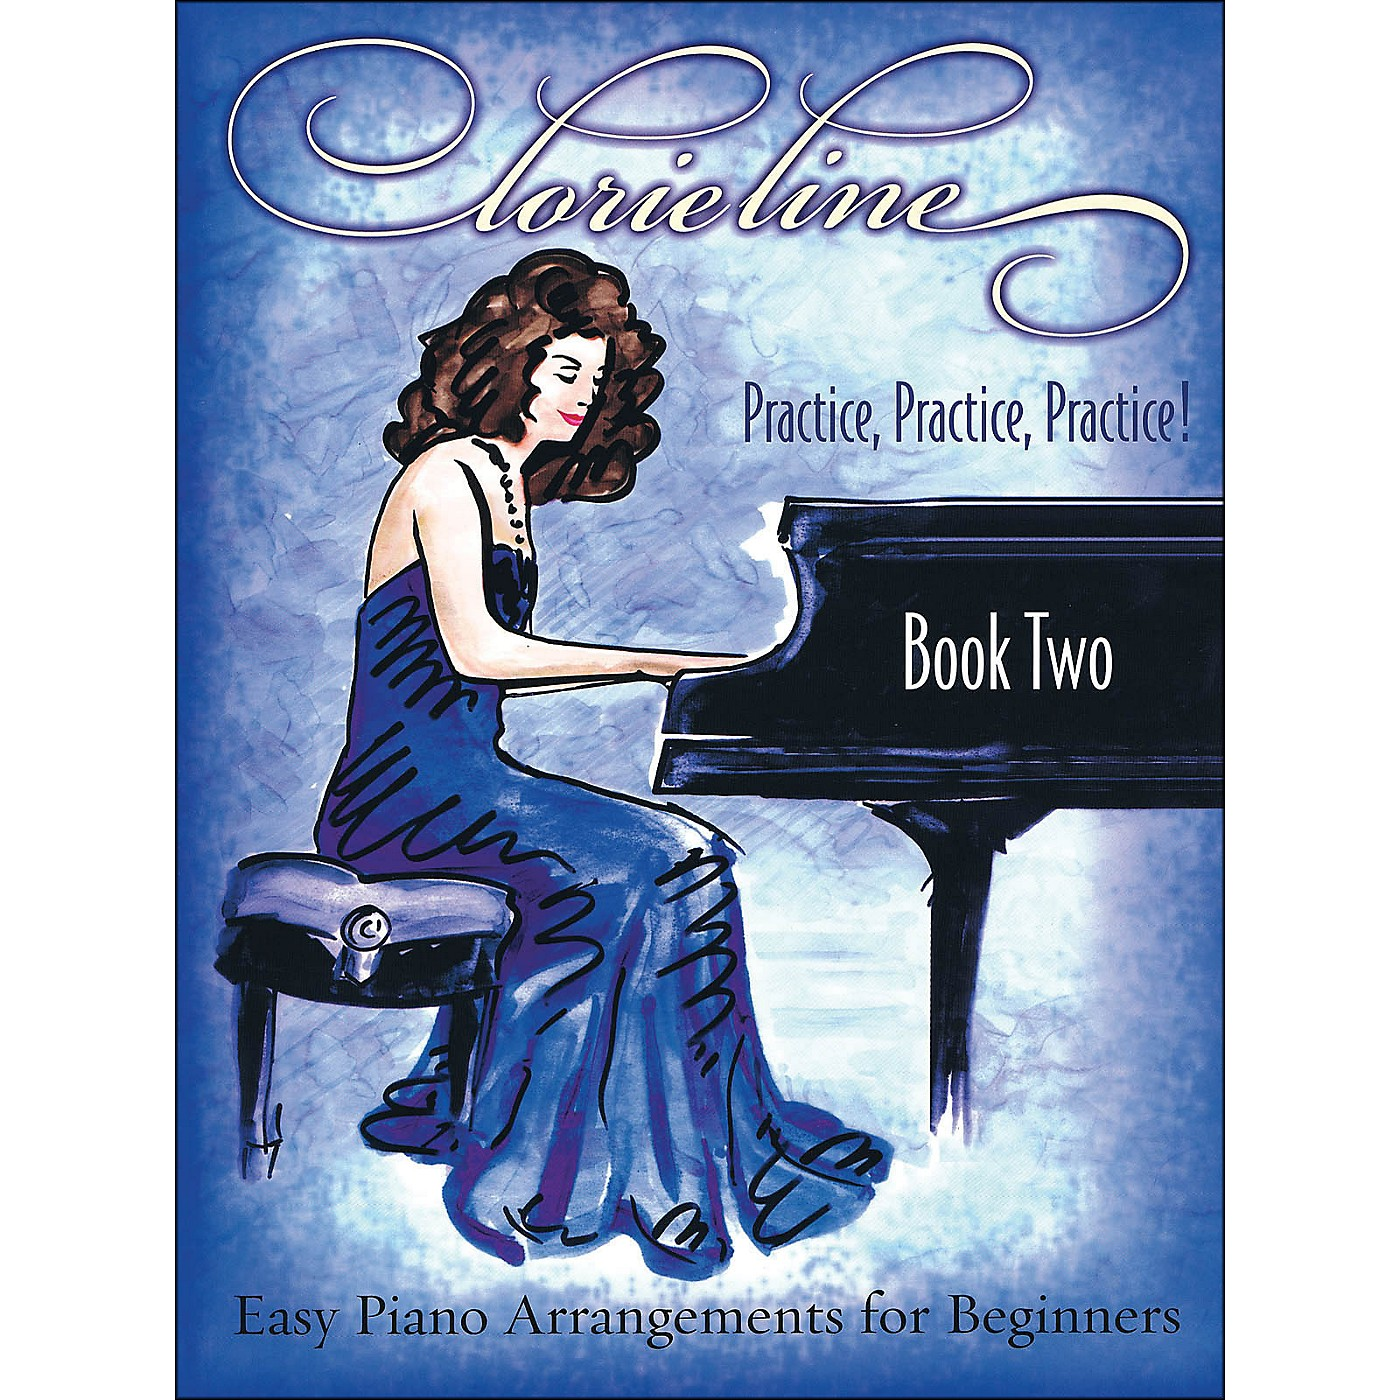 Hal Leonard Lorie Line Practice, Practice, Practice! Book 2 arranged for piano solo thumbnail